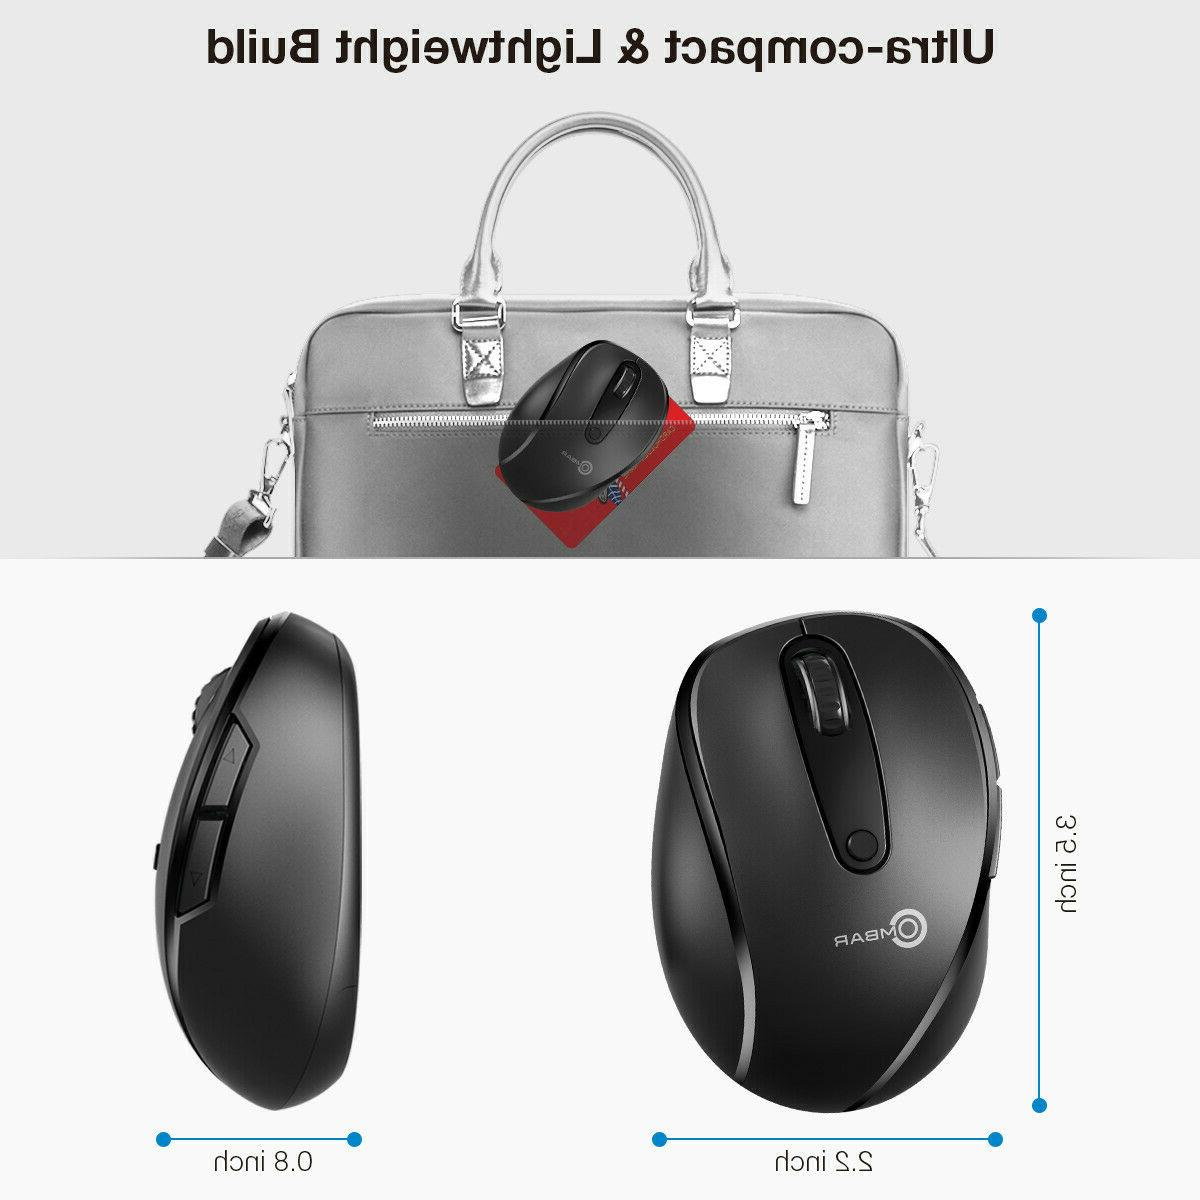 2.4GHZ 6 Wireless Mice for PC OS